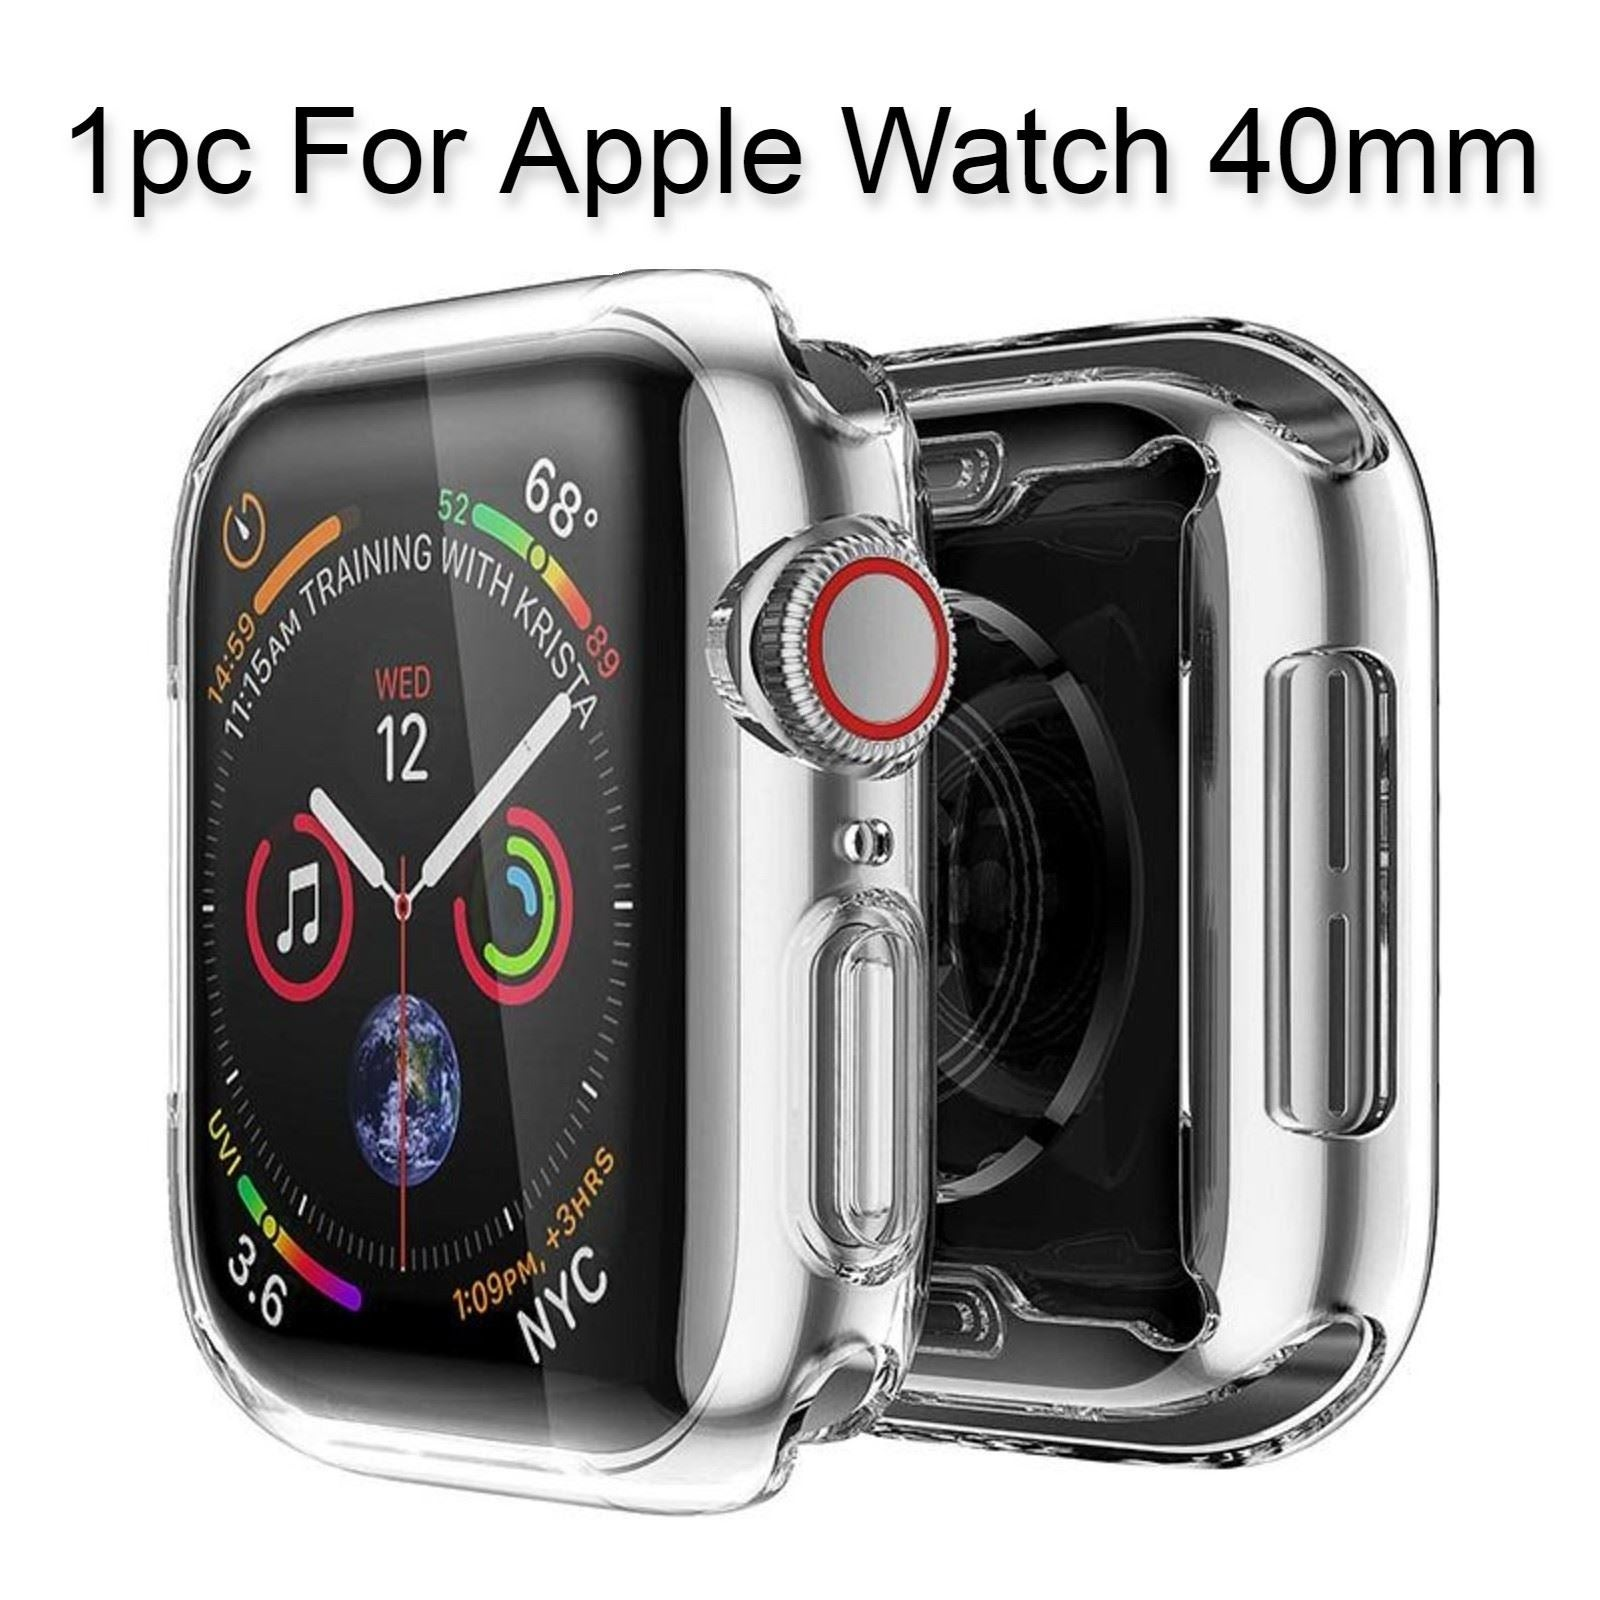 1pc For Apple Watch 40mm Clear Case